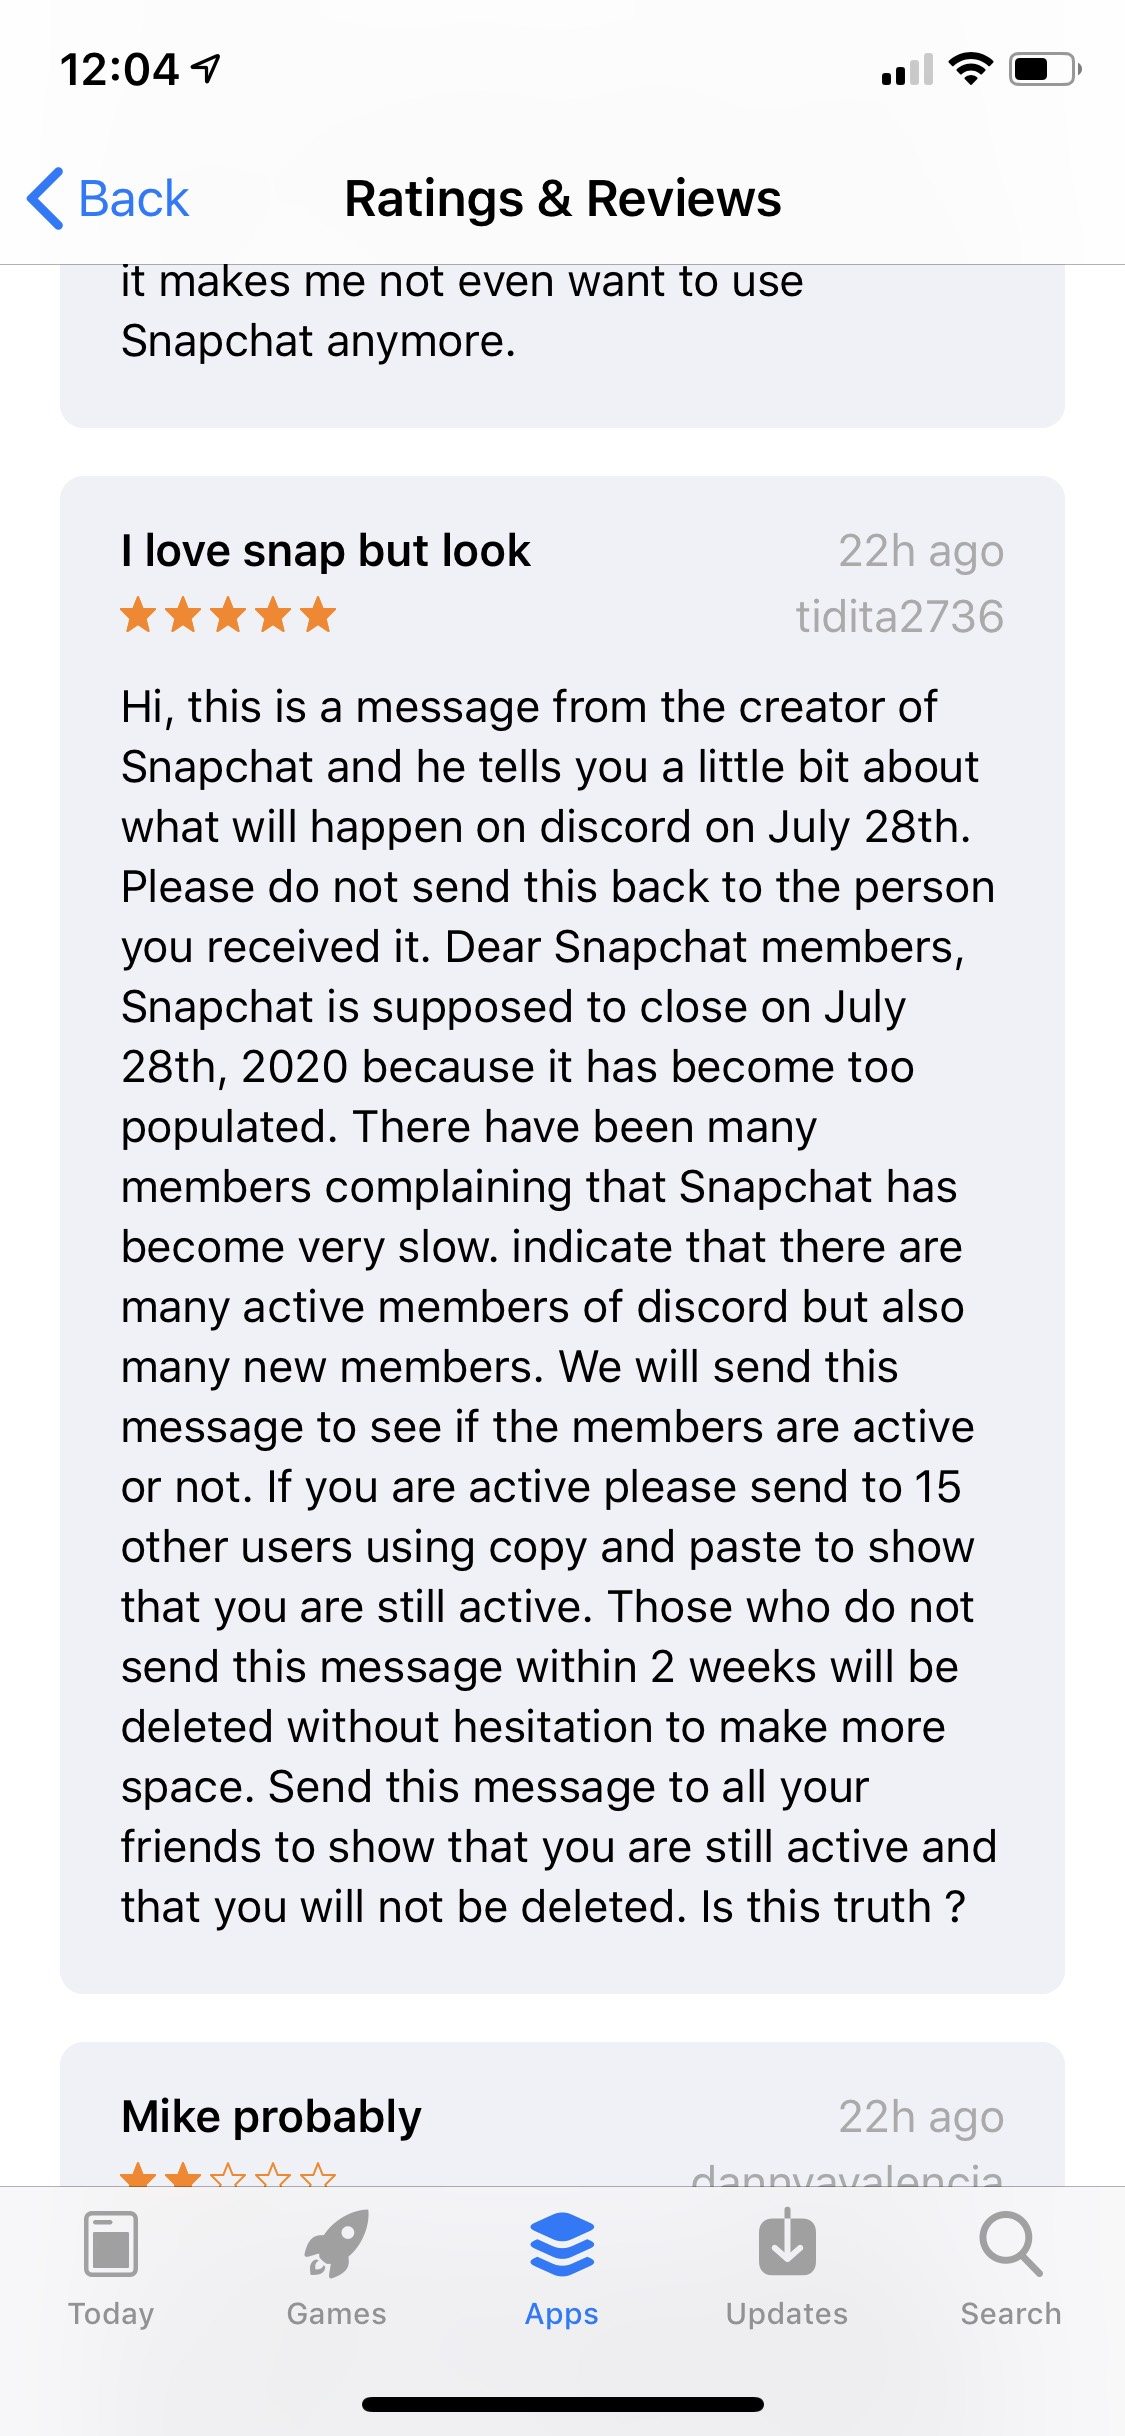 Is Snapchat Deleting Accounts and Then Closing on July 28th